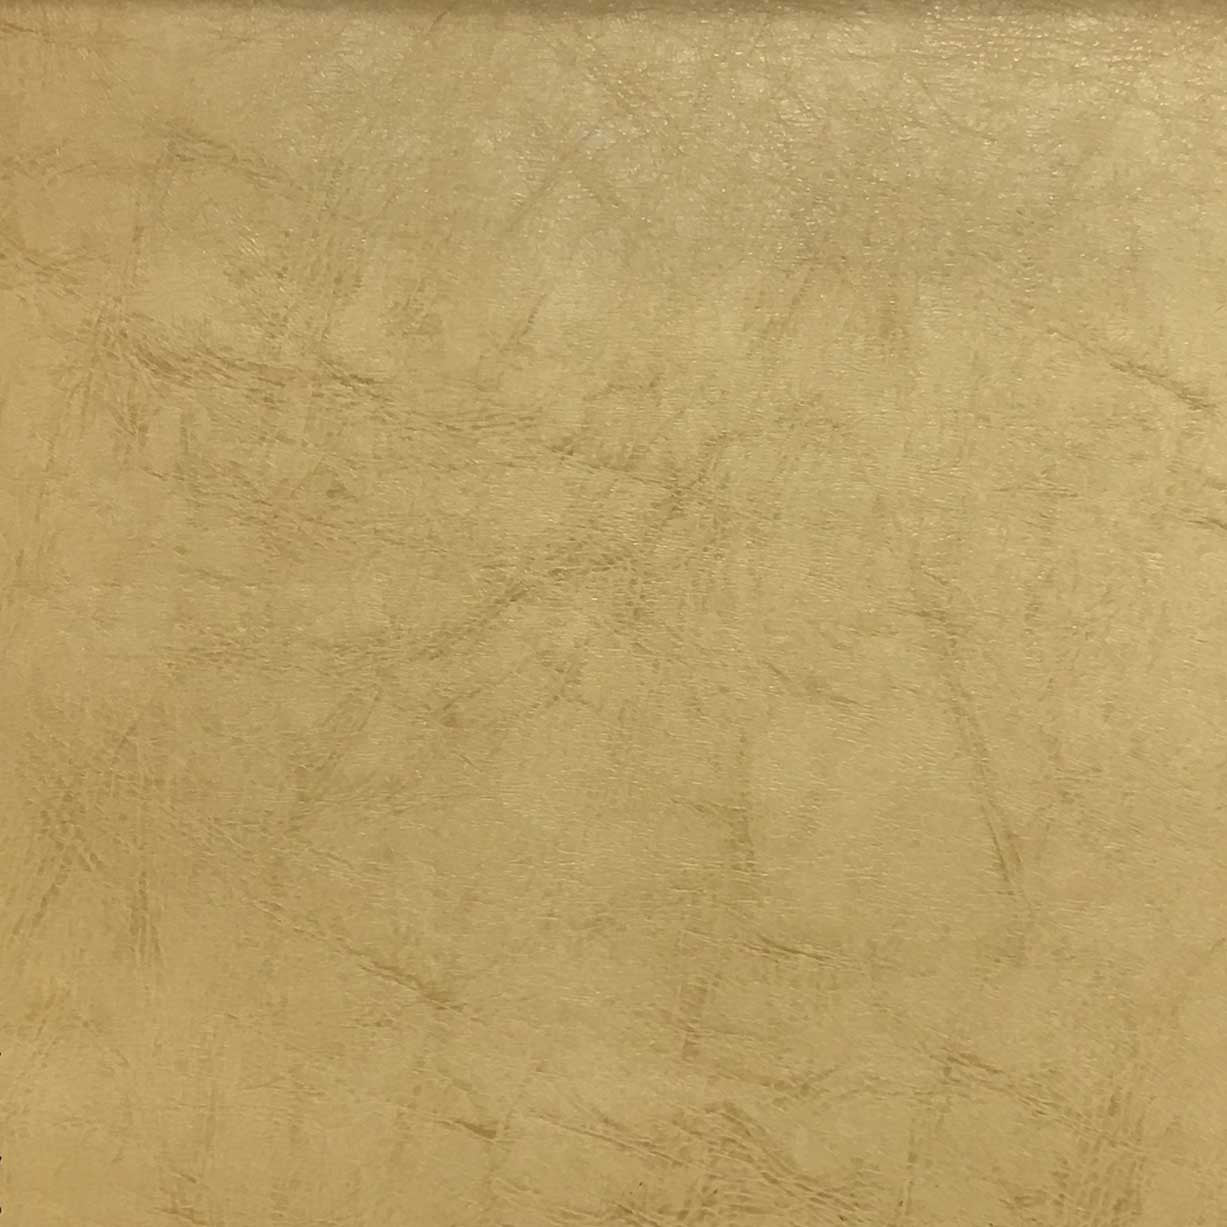 Brink solid vinyl vegan faux leather upholstery fabric for Fabric for sale by the yard